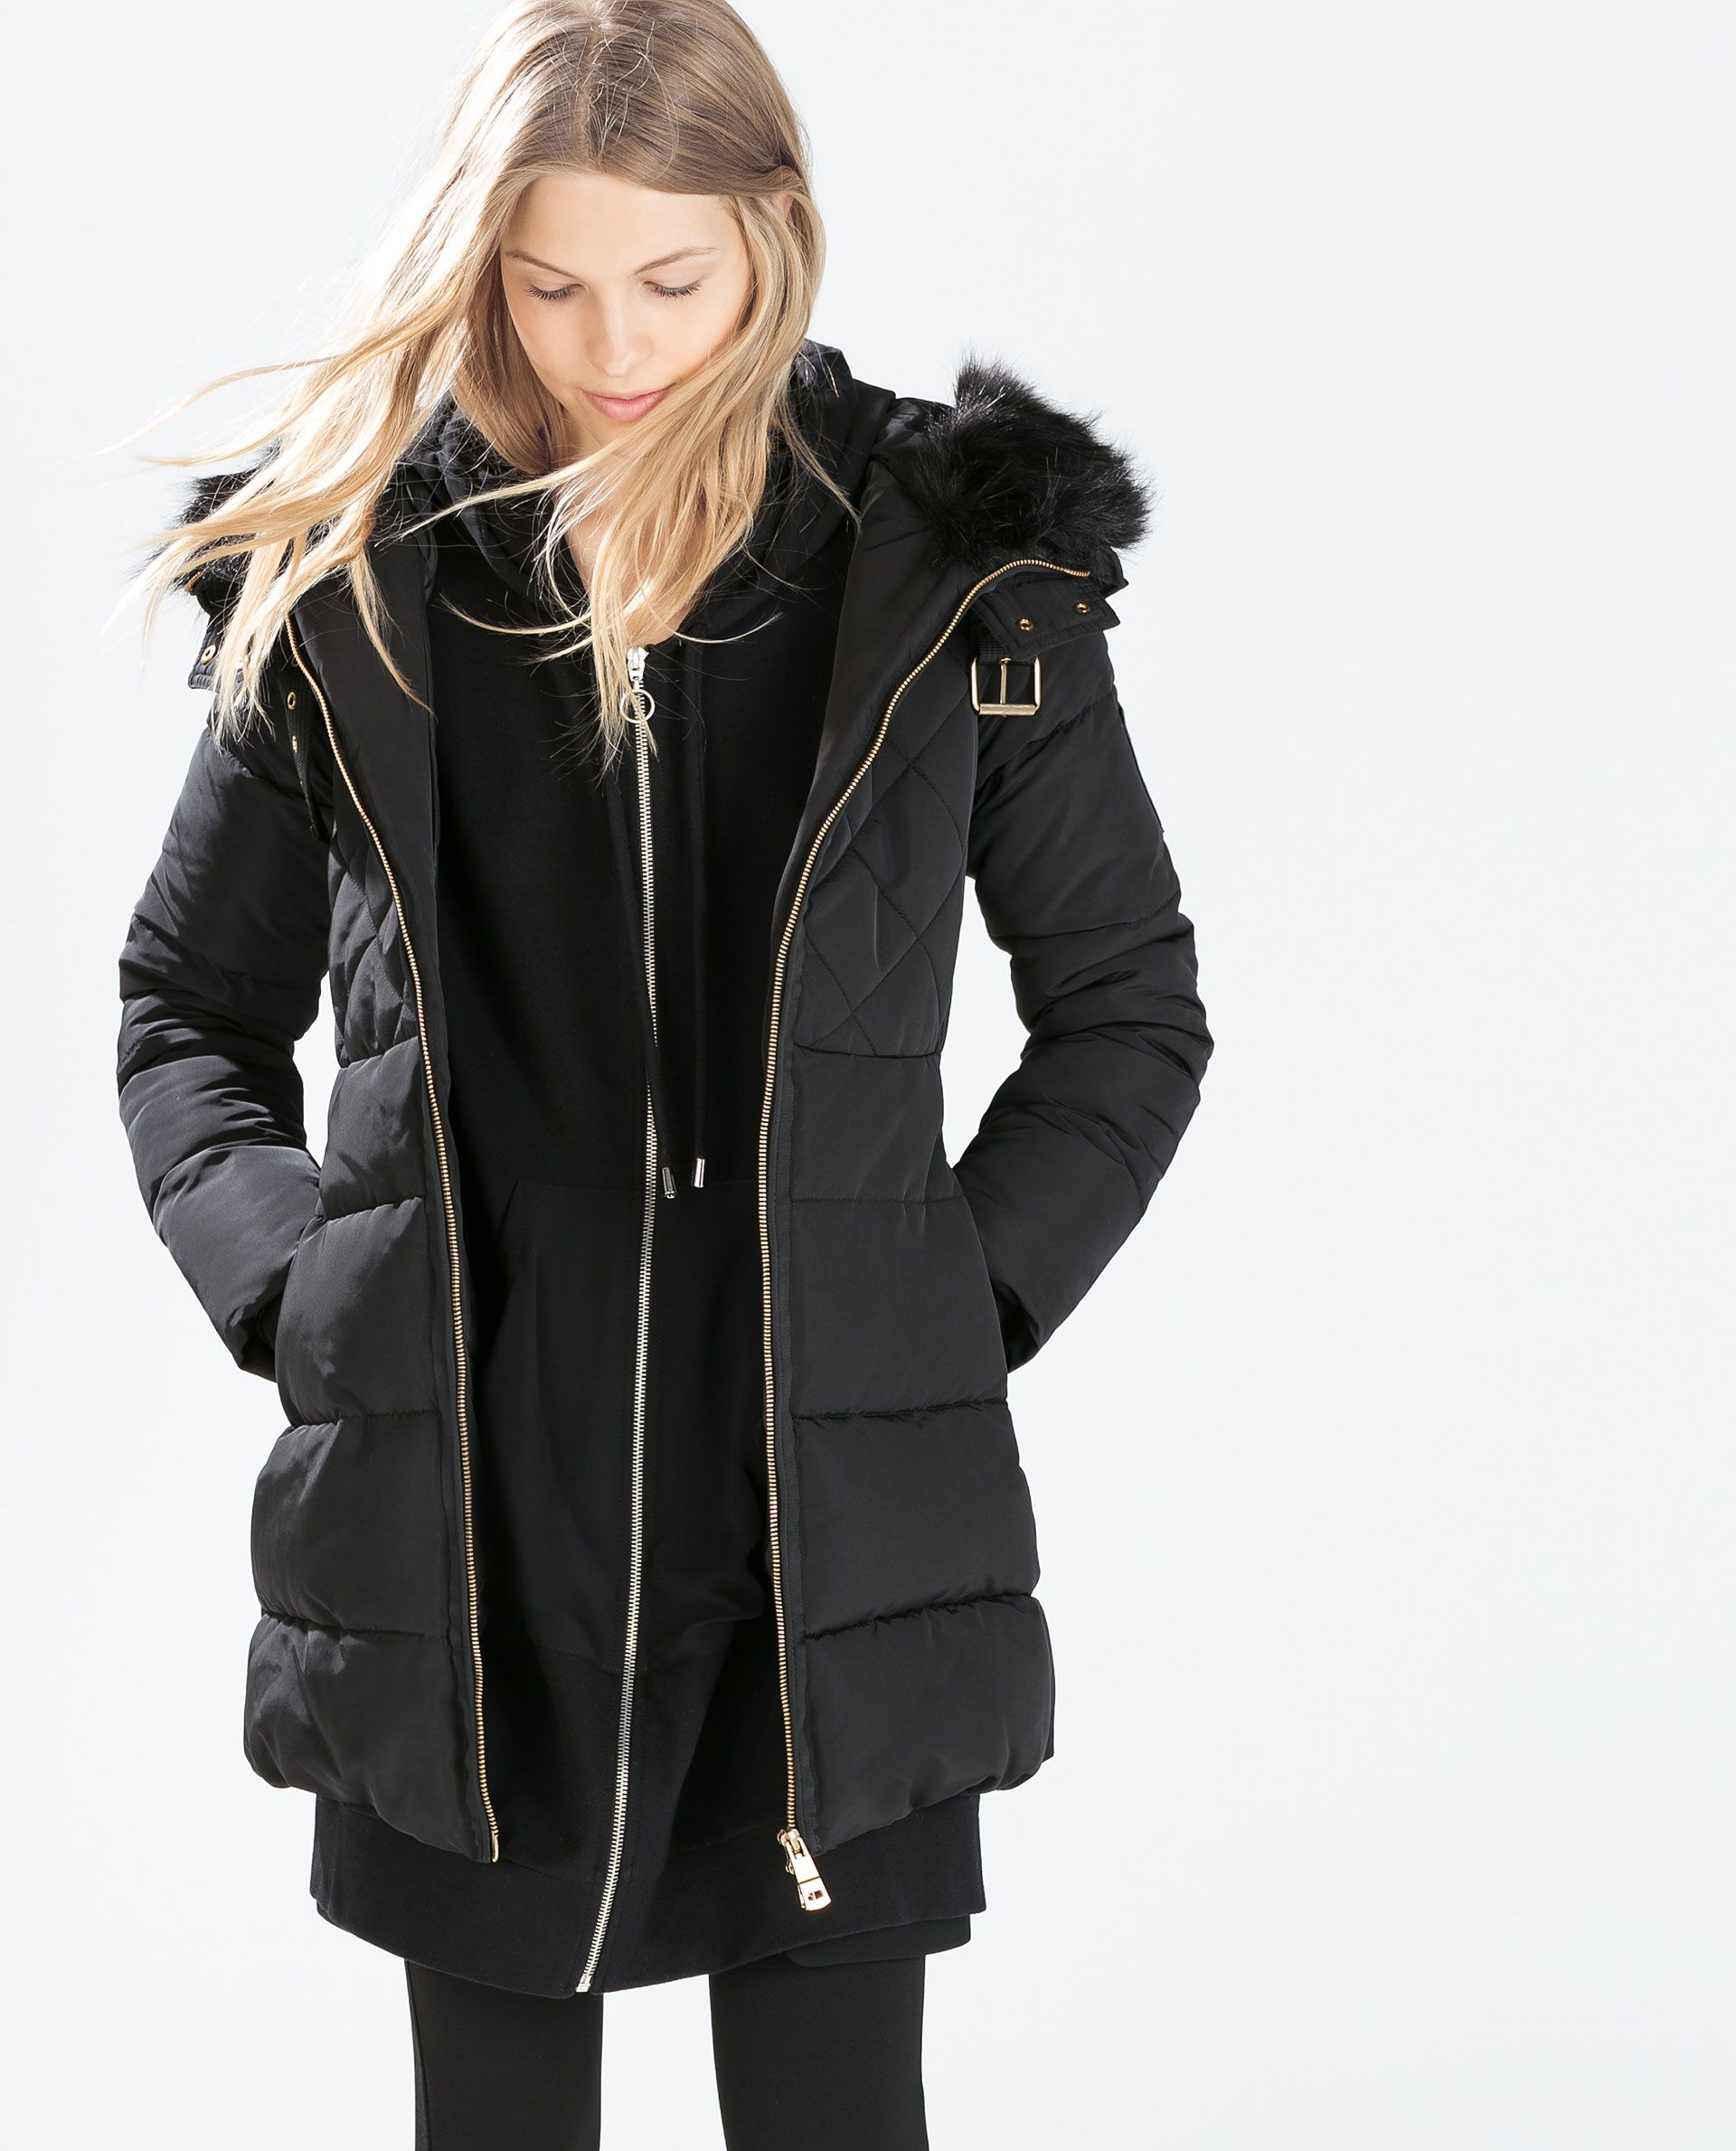 Image 1 Of MID-LENGTH DOWN JACKET WITH FUR COLLAR From Zara | Be On Me | Pinterest | Mid Length ...